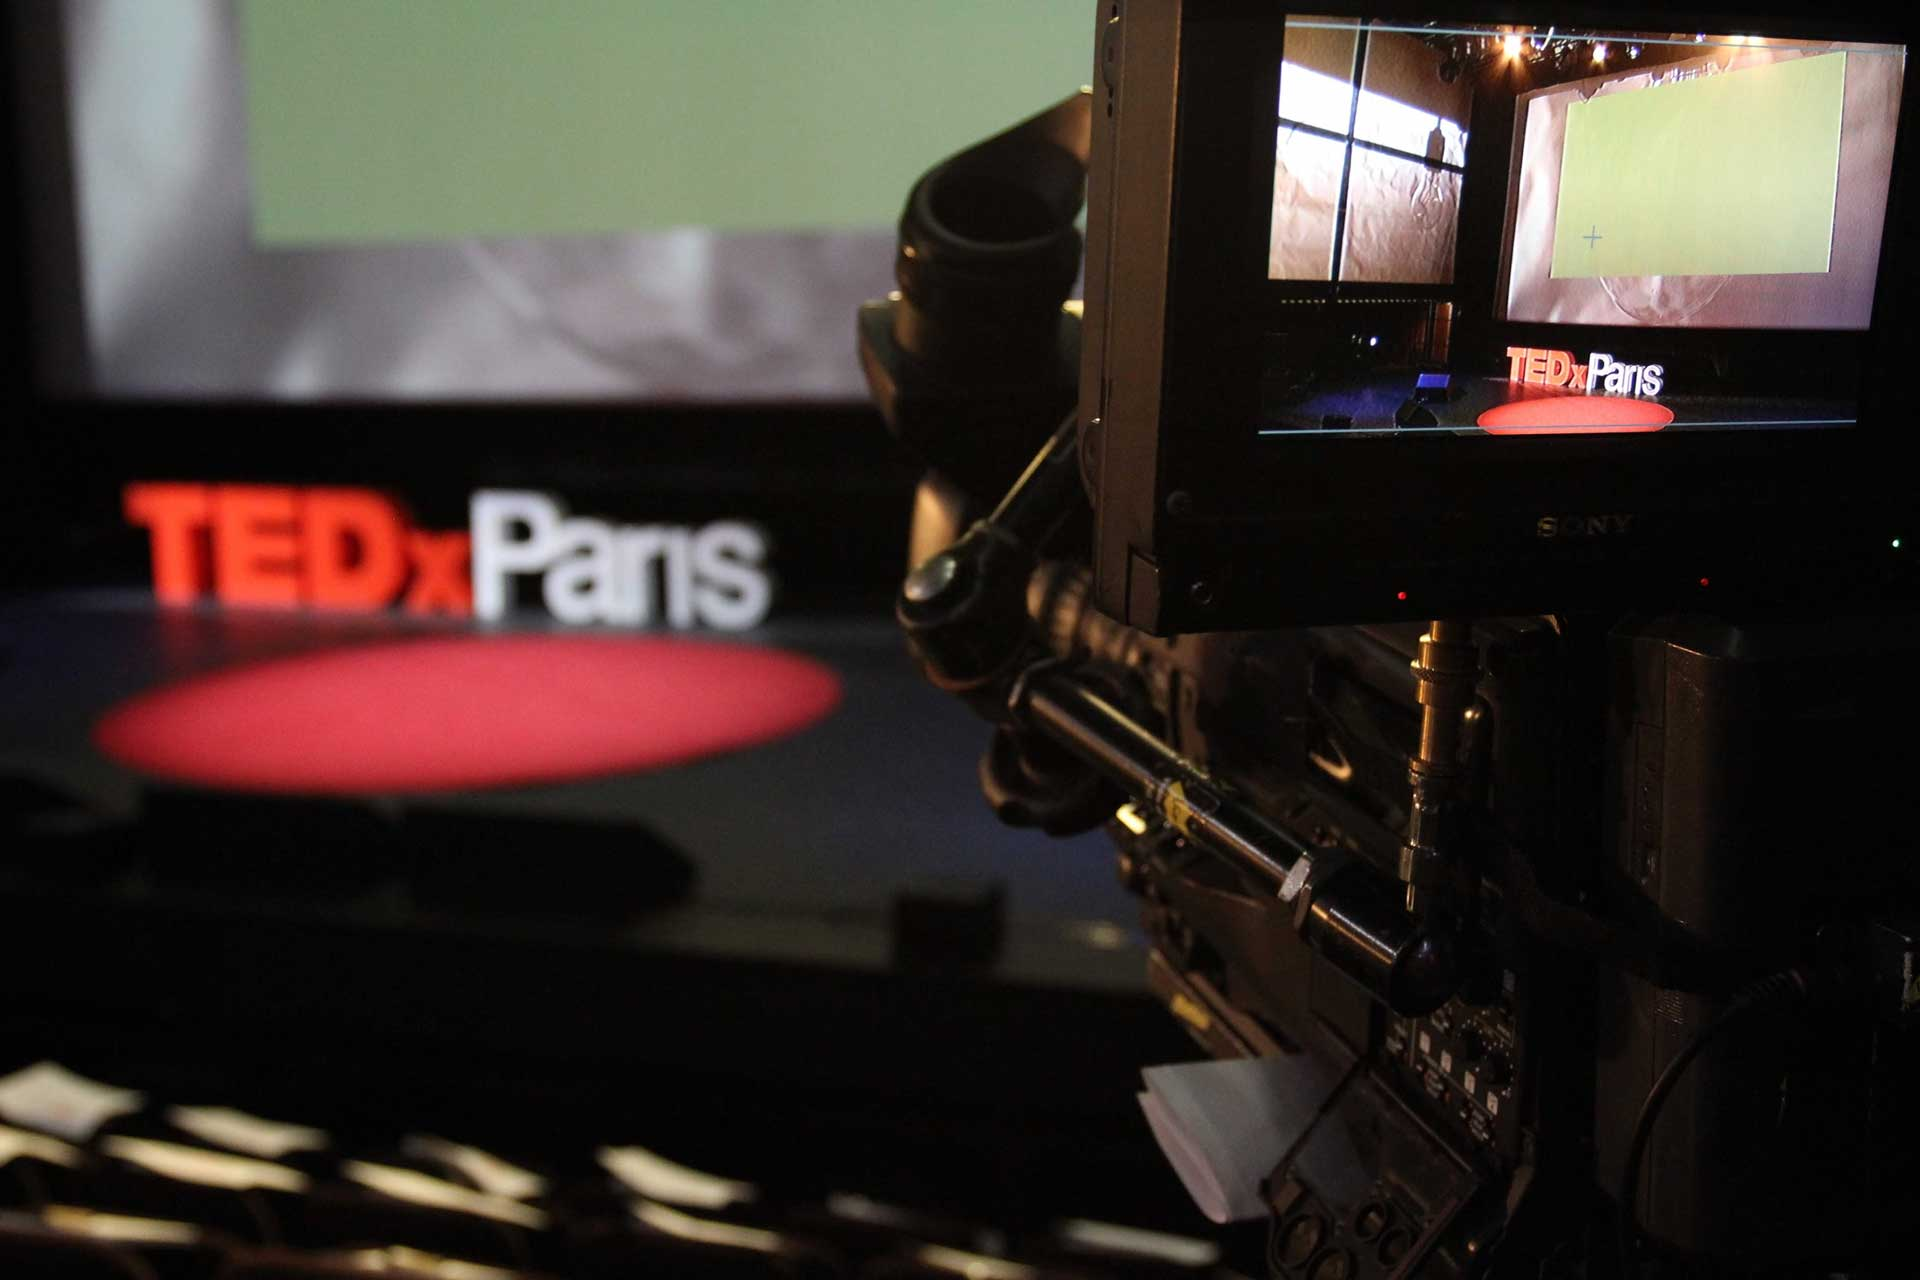 conference-TEDxParis-2013-2.jpg